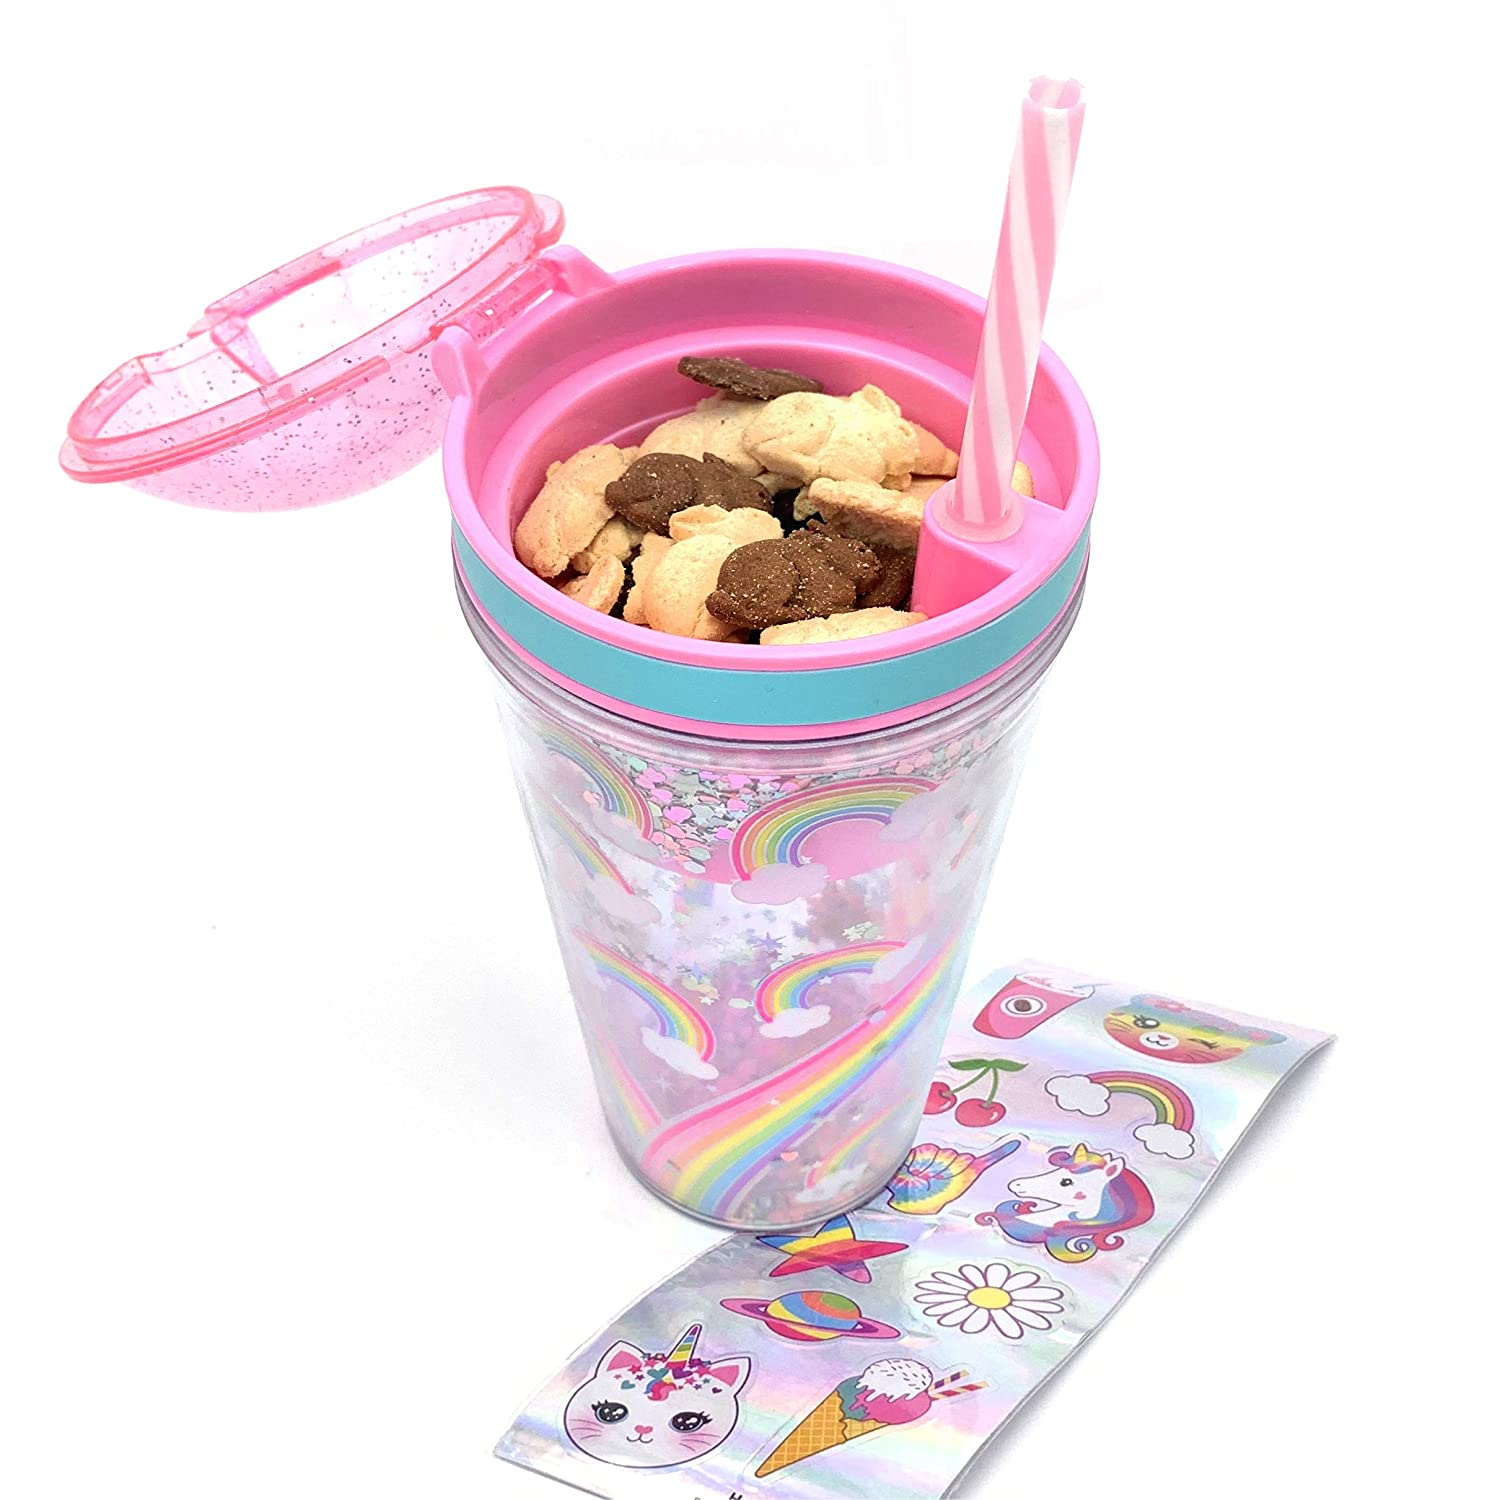 Snack and Drink Cup Rainbow Tumbl Kid's All-in-One Theme Max 89% OFF service Combo